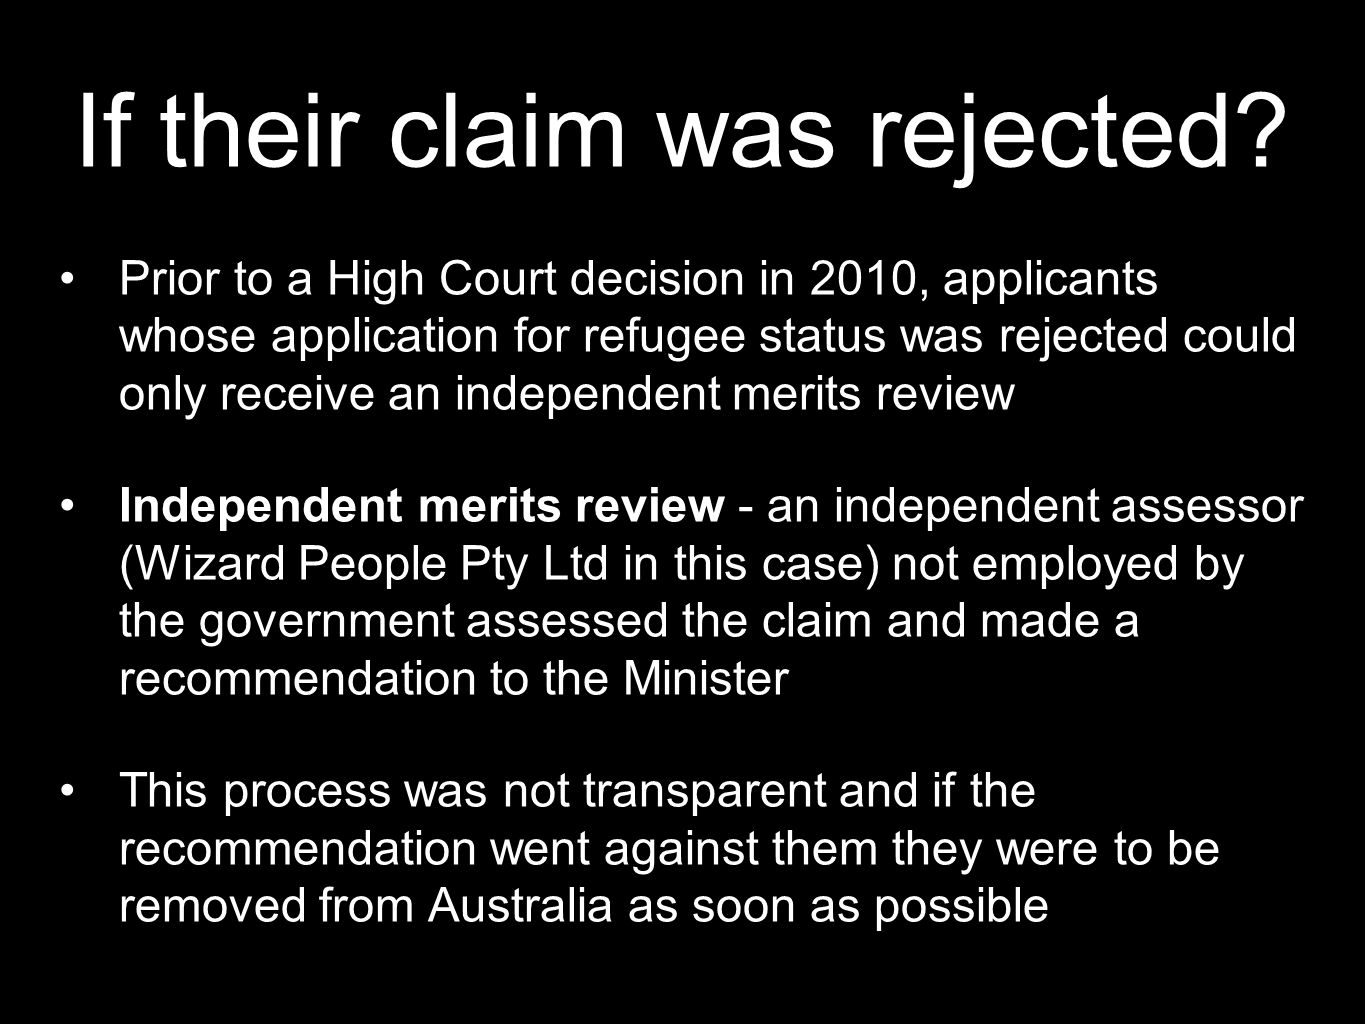 If their claim was rejected